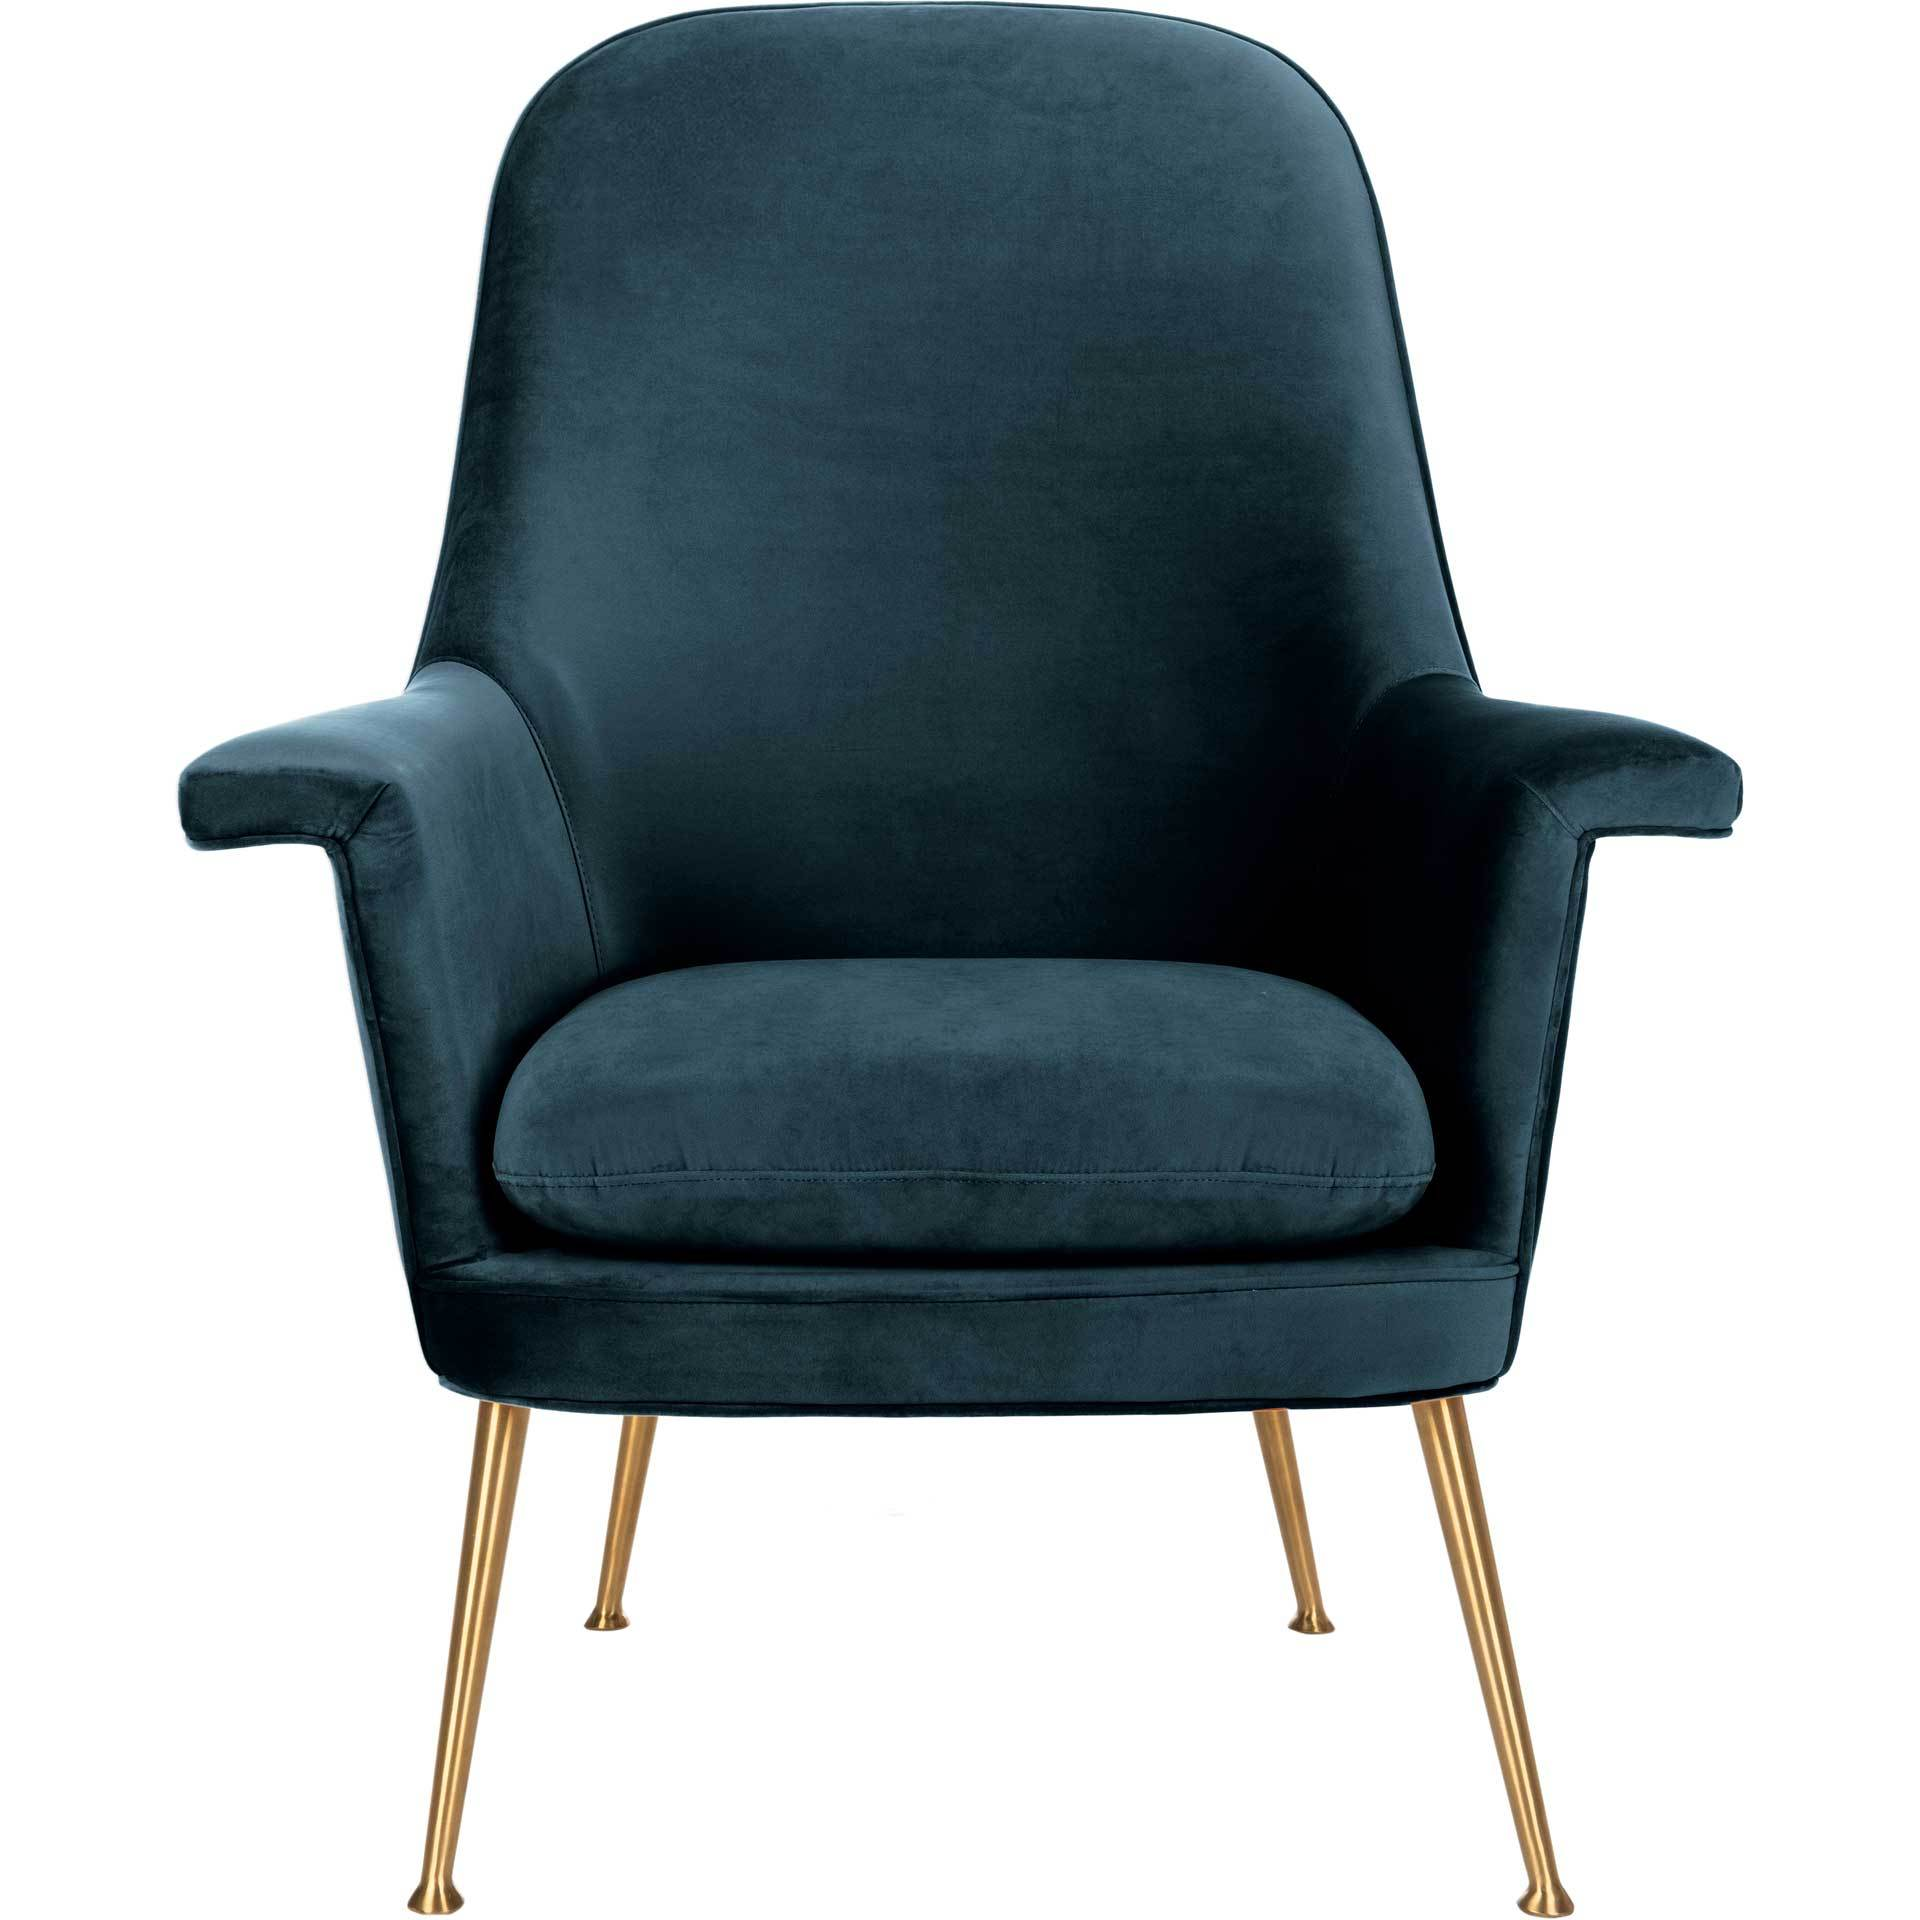 Aidan Velvet Arm Chair Navy/Gold